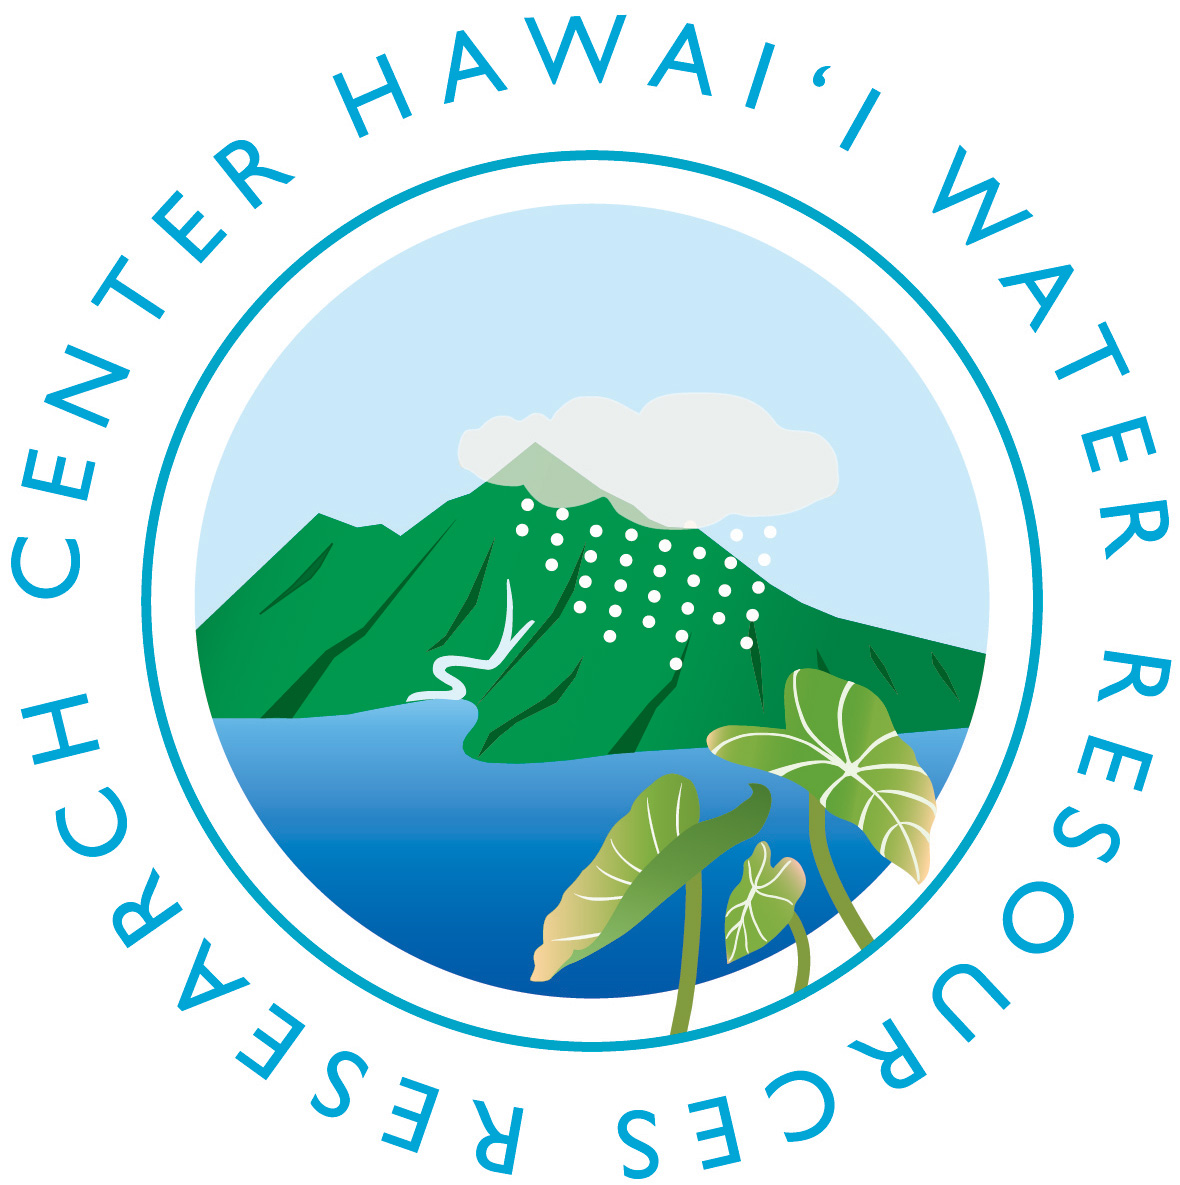 wrrc hawaii logo graphic